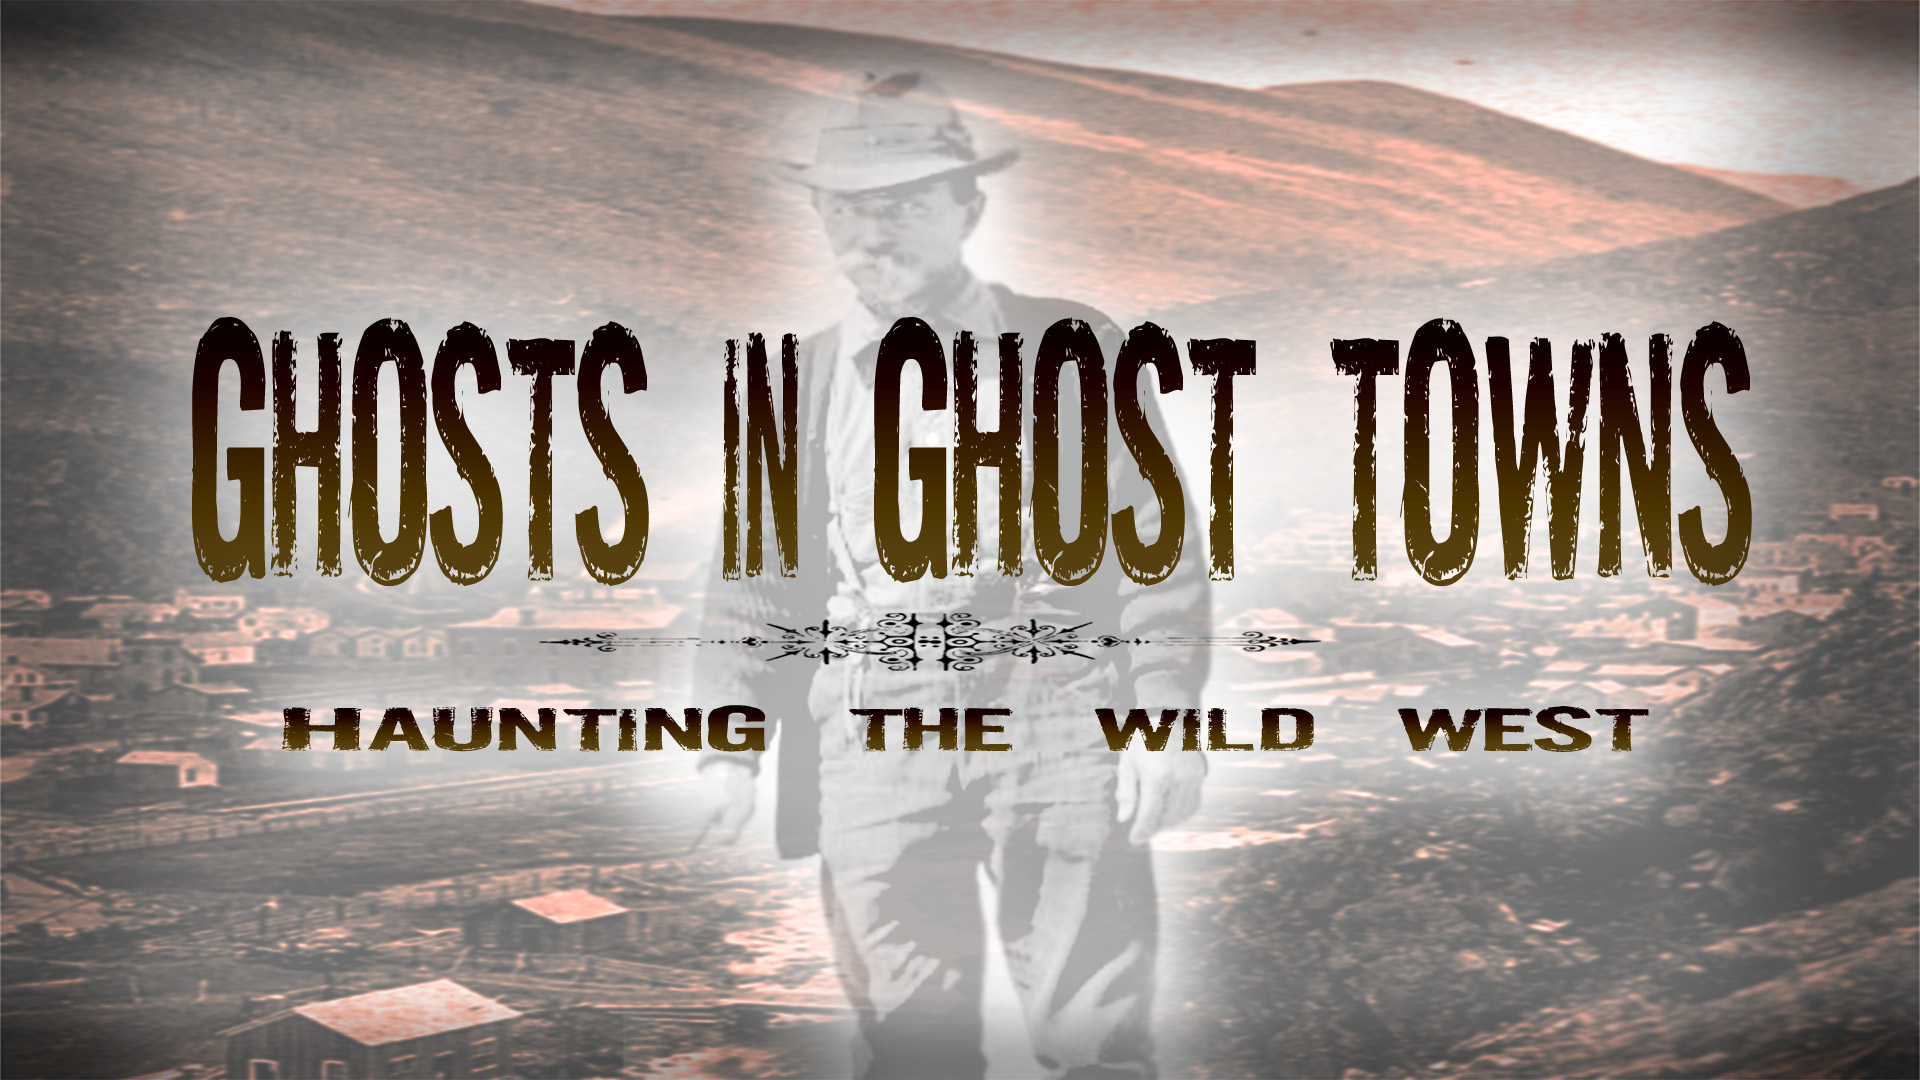 Ghosts in Ghost Towns: Haunting The Wild West